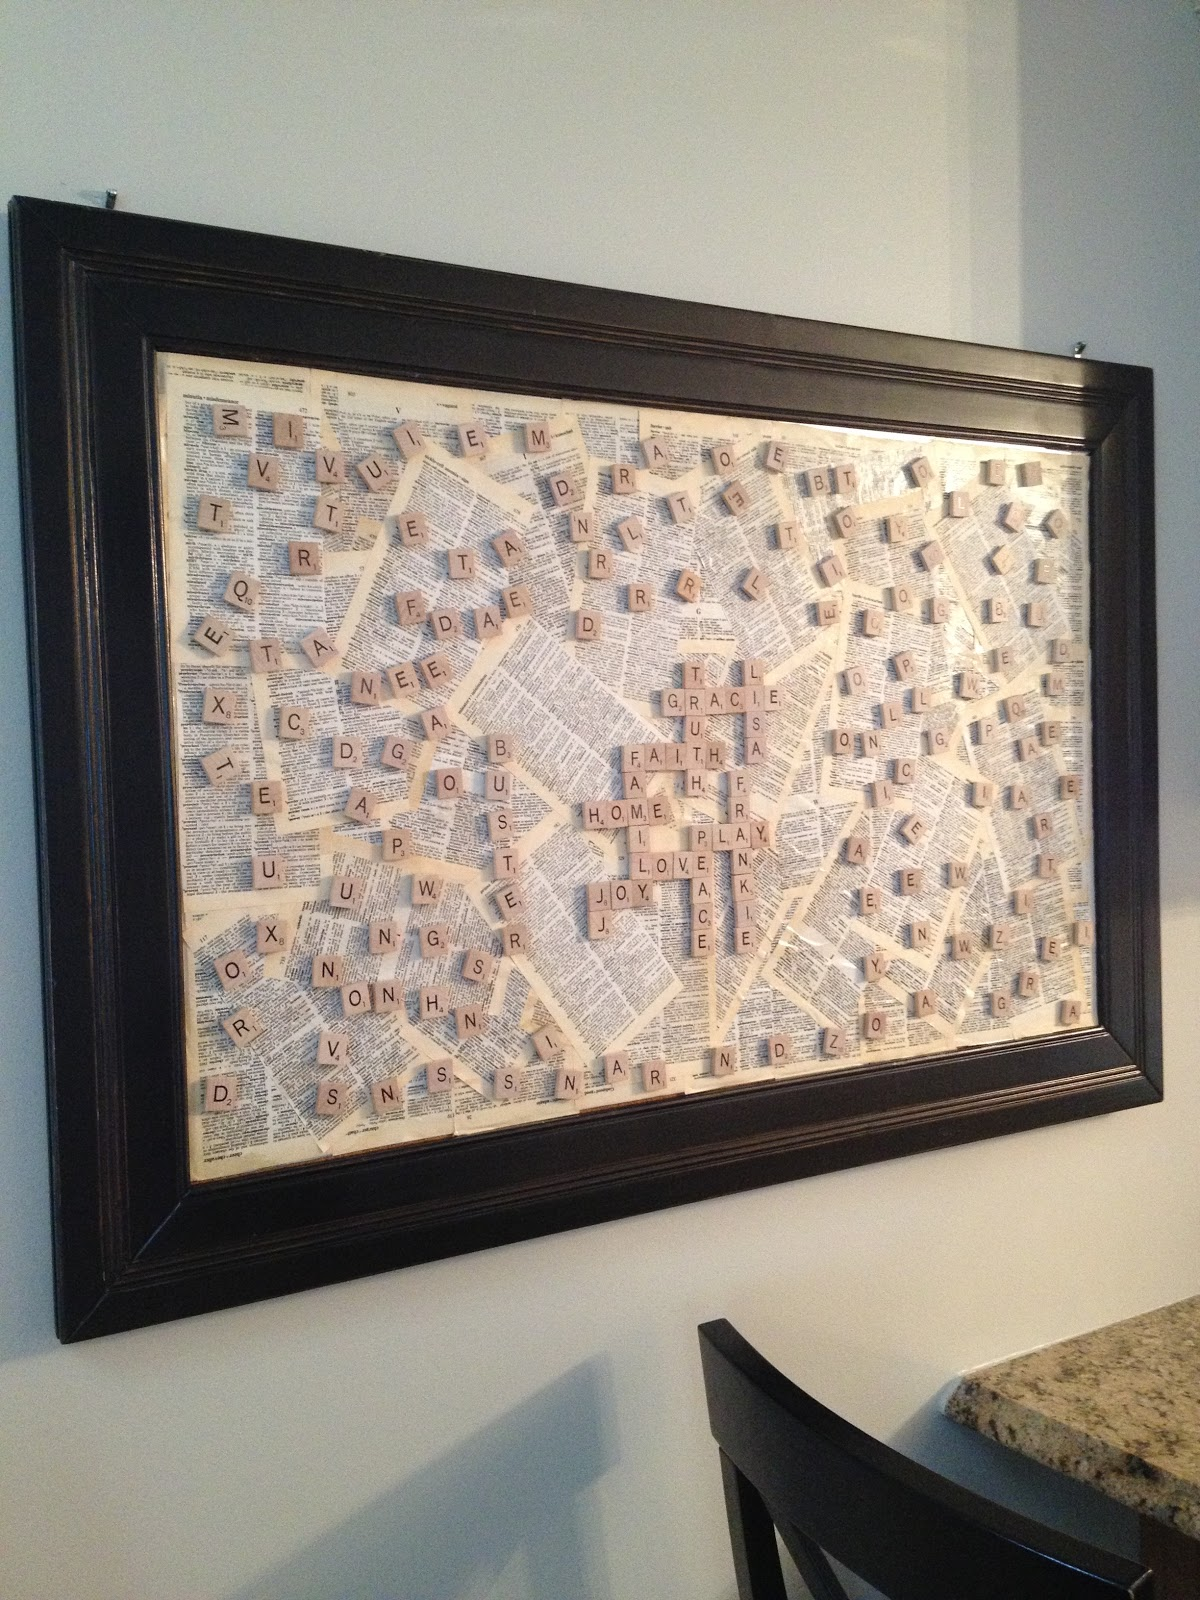 Gracie Blue Wall Art For The Kitchen Scrabble Board Diy